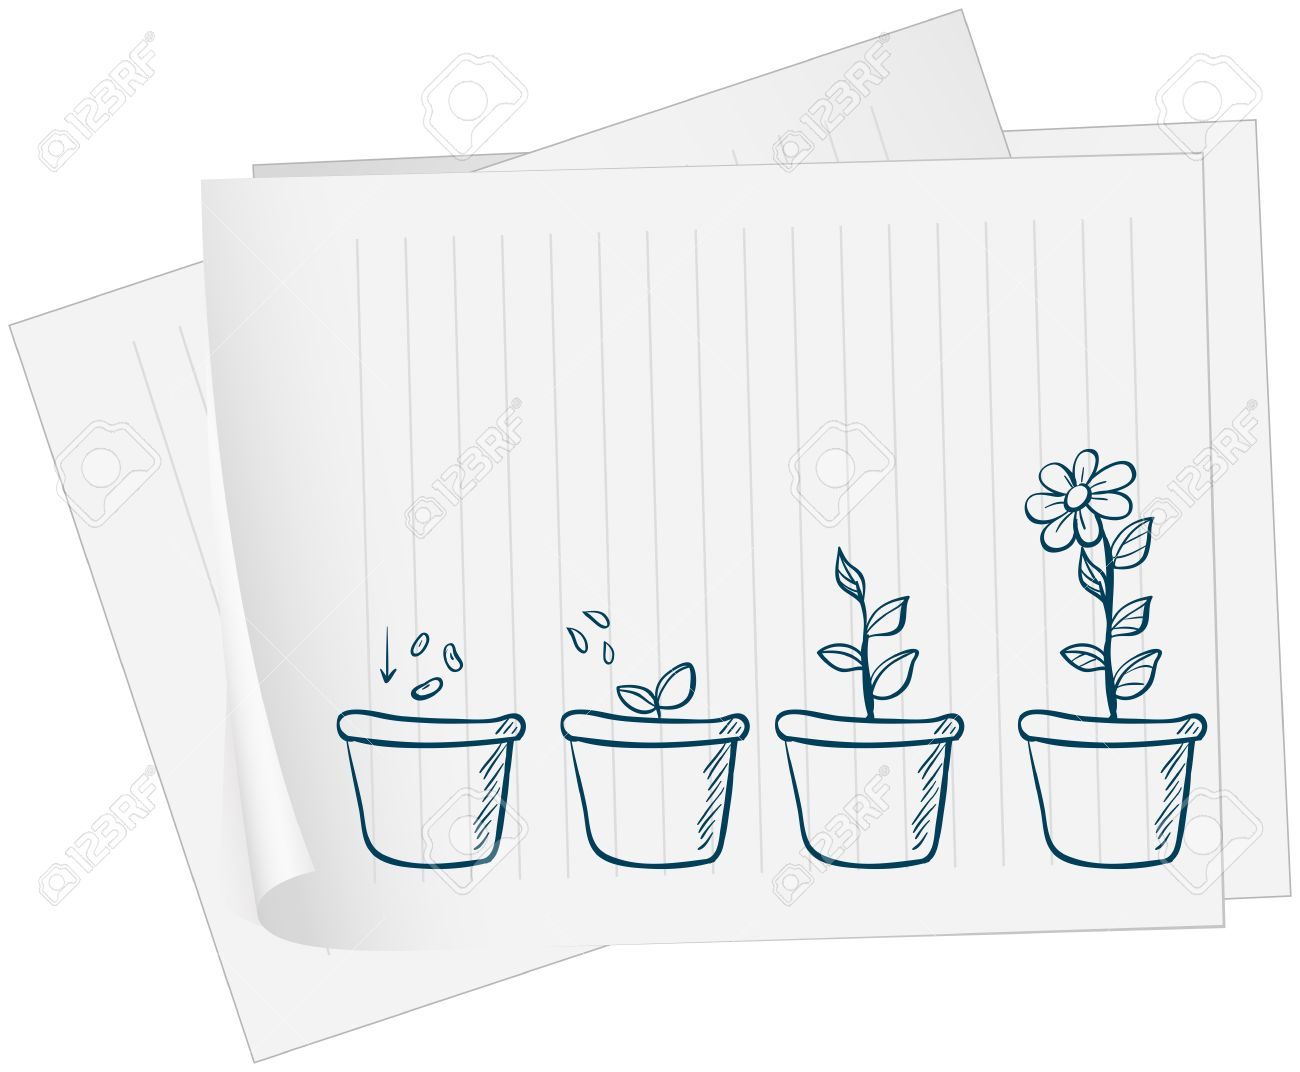 Illustration of a paper with a drawing of a growing plant on a white background - 18860219